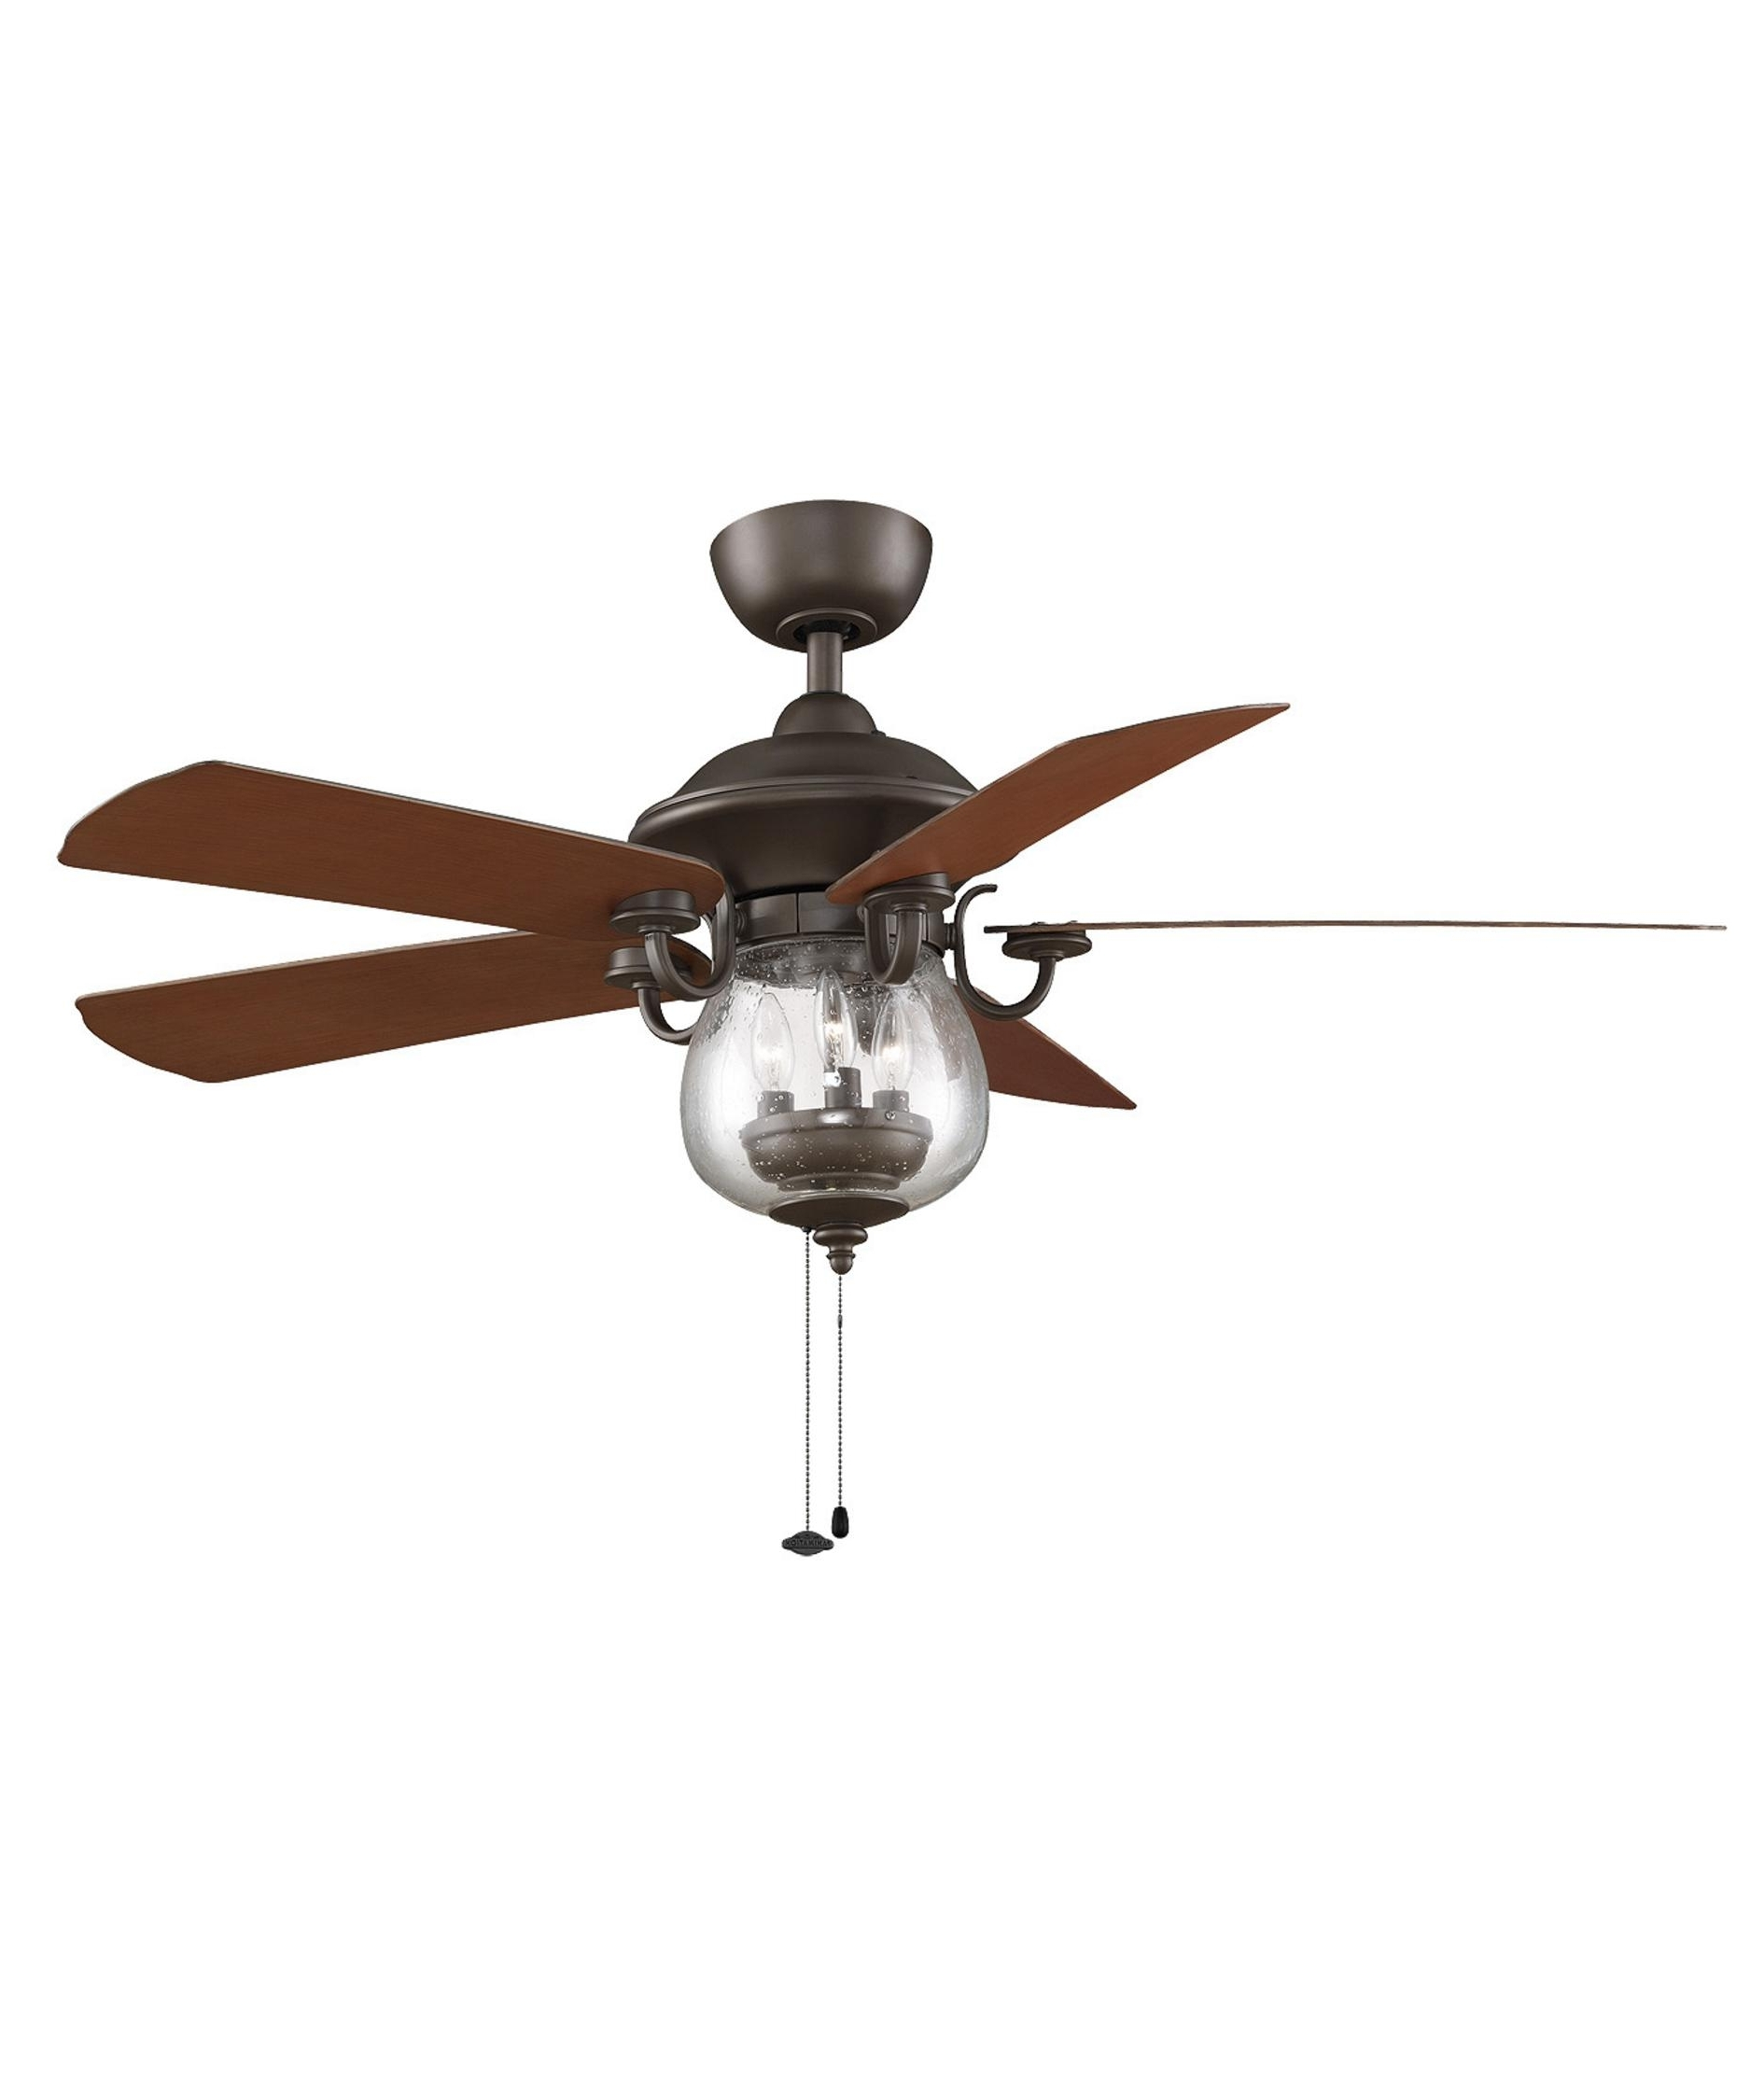 Outdoor Ceiling Fan Lights Throughout Well Liked Fanimation Fp7954 Crestford 52 Inch 5 Blade Ceiling Fan (View 6 of 20)